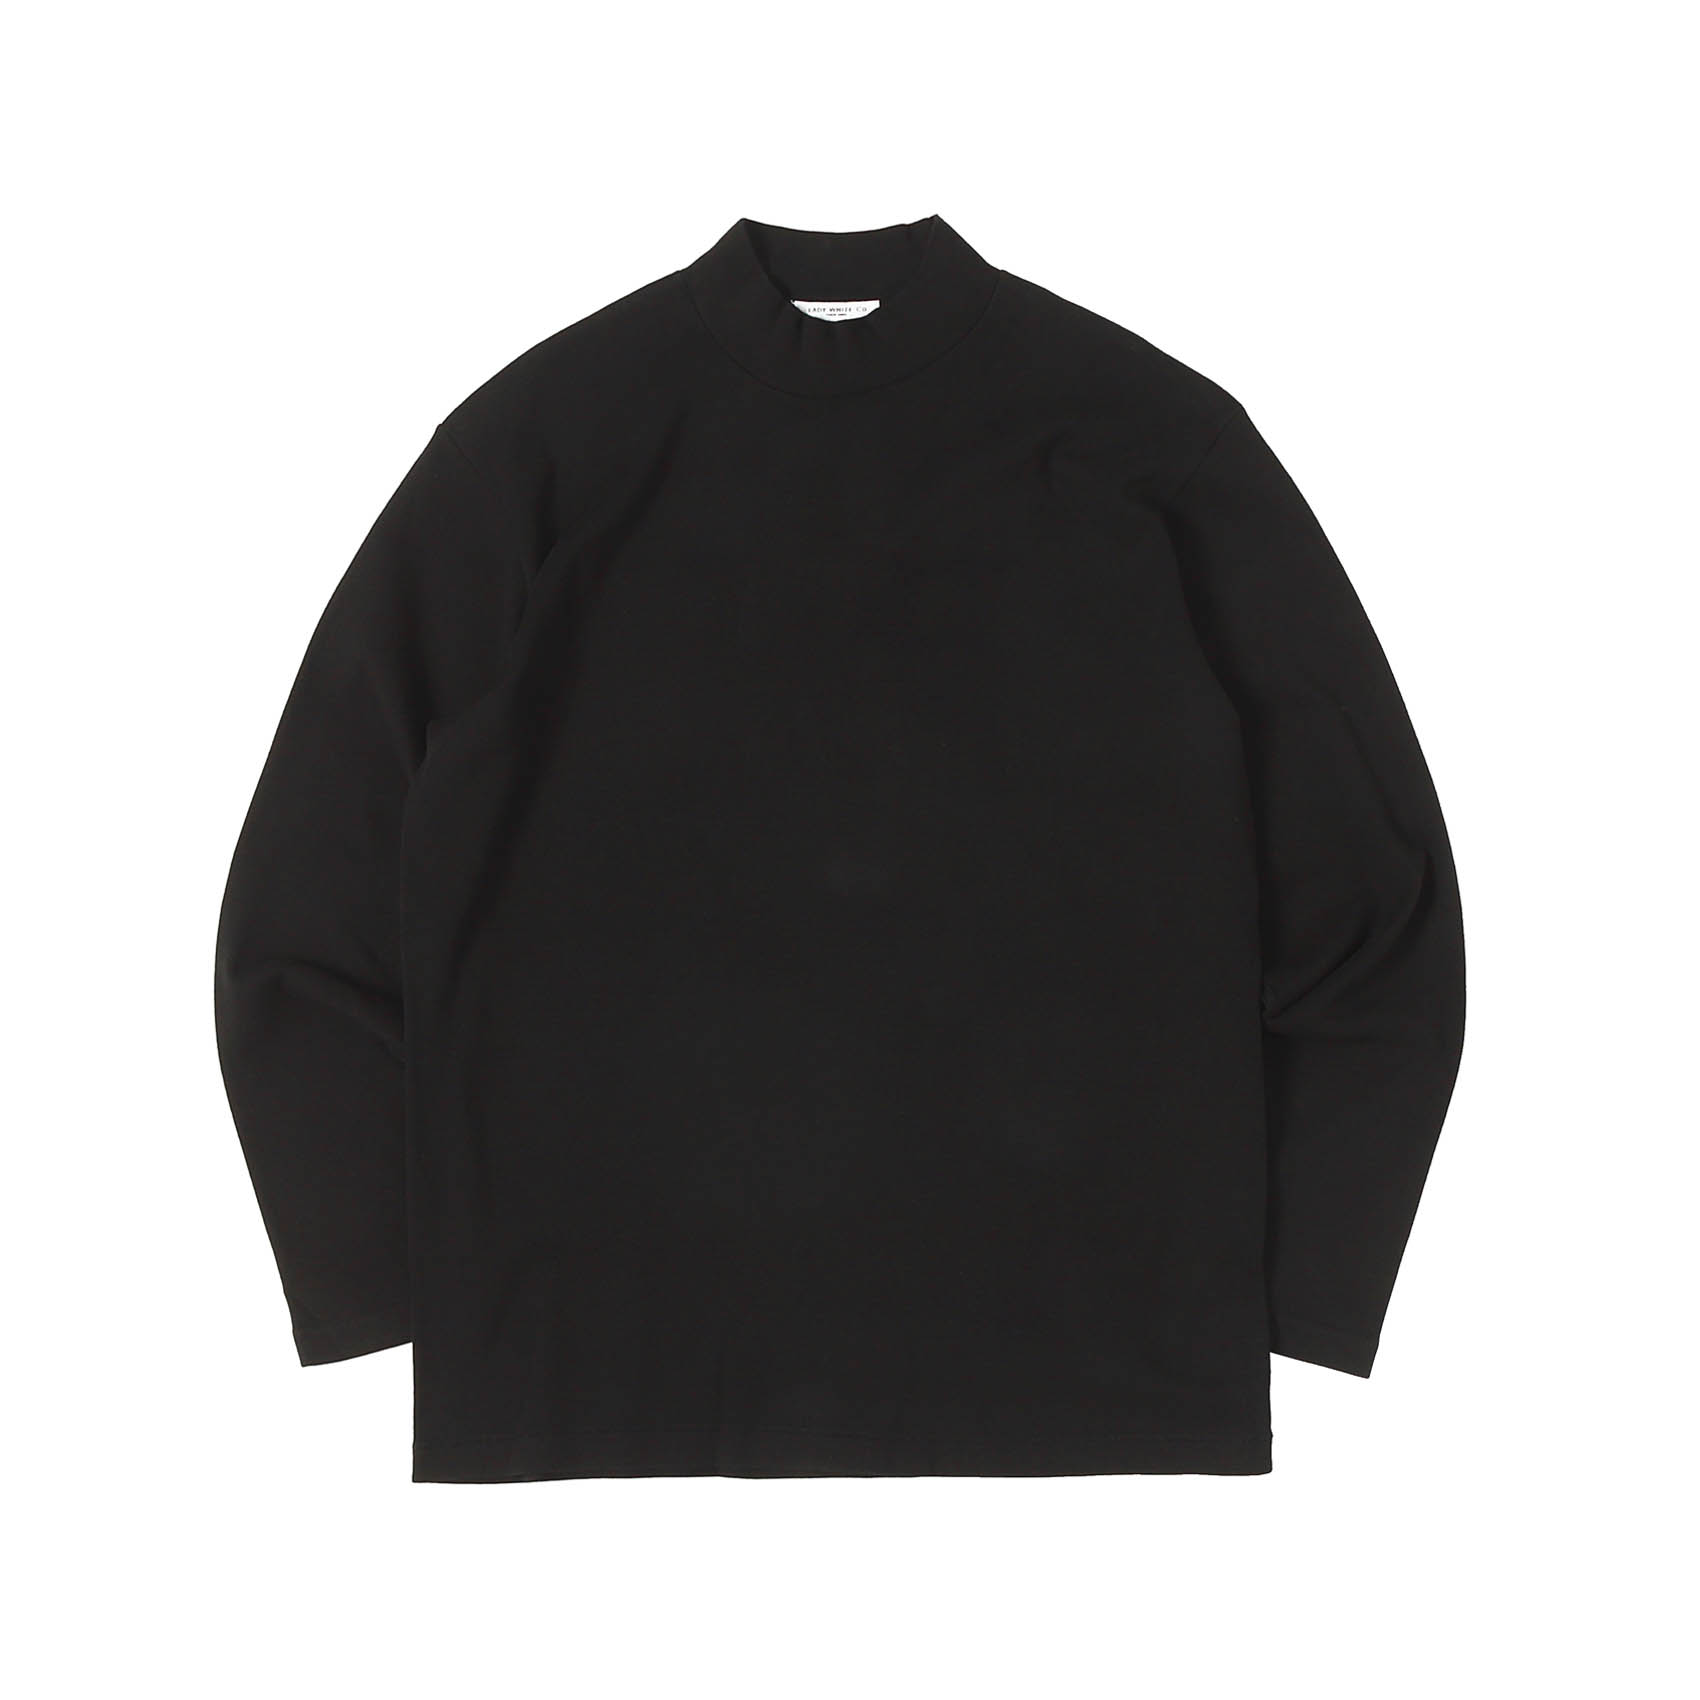 L/S MOCK NECK - BLACK